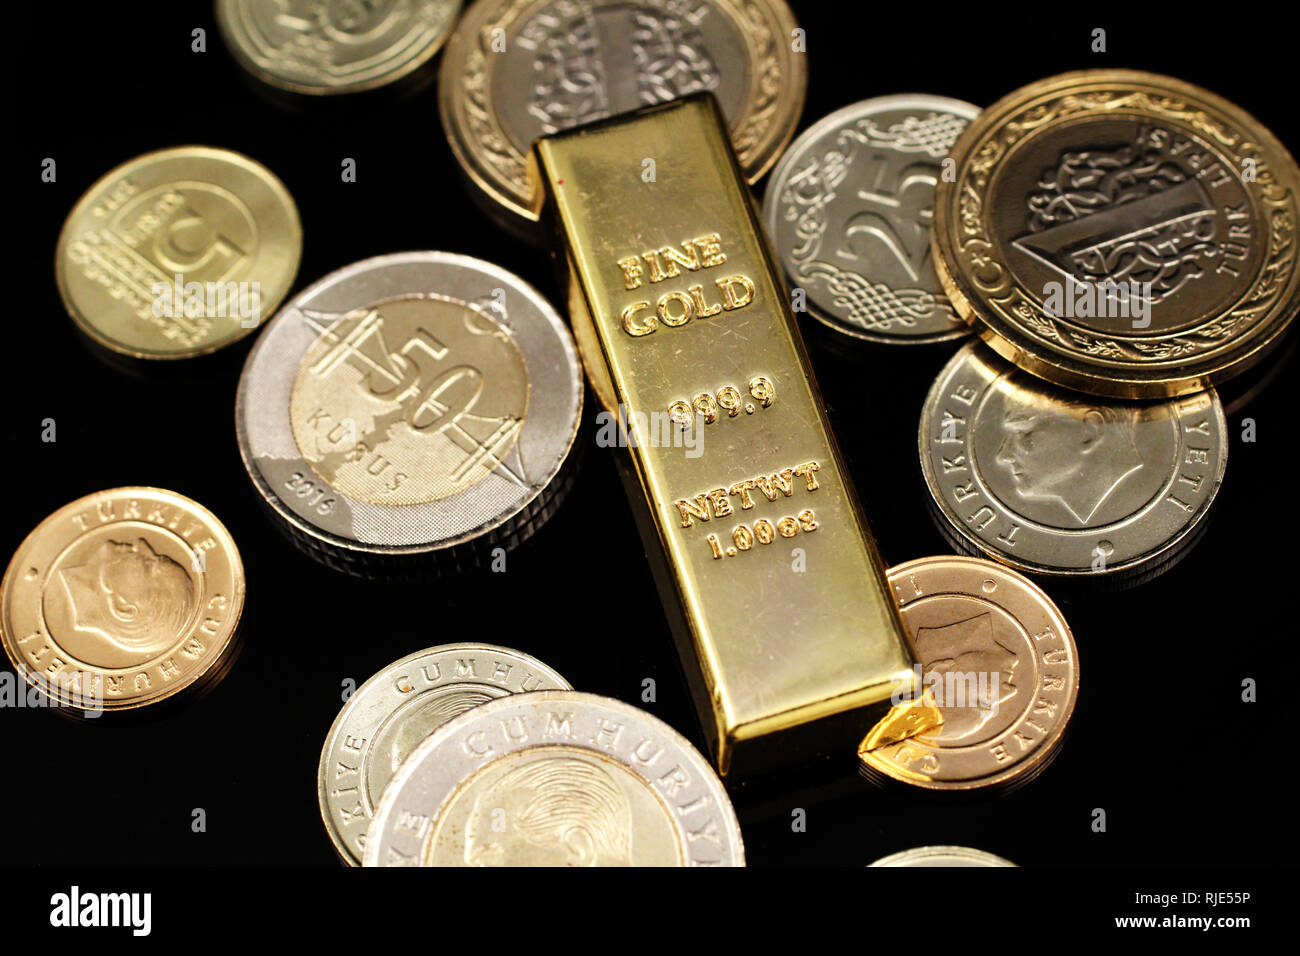 A macro image of an assortment of Turkish coins and a gold one ounce ingot on a reflective black background - Stock Image